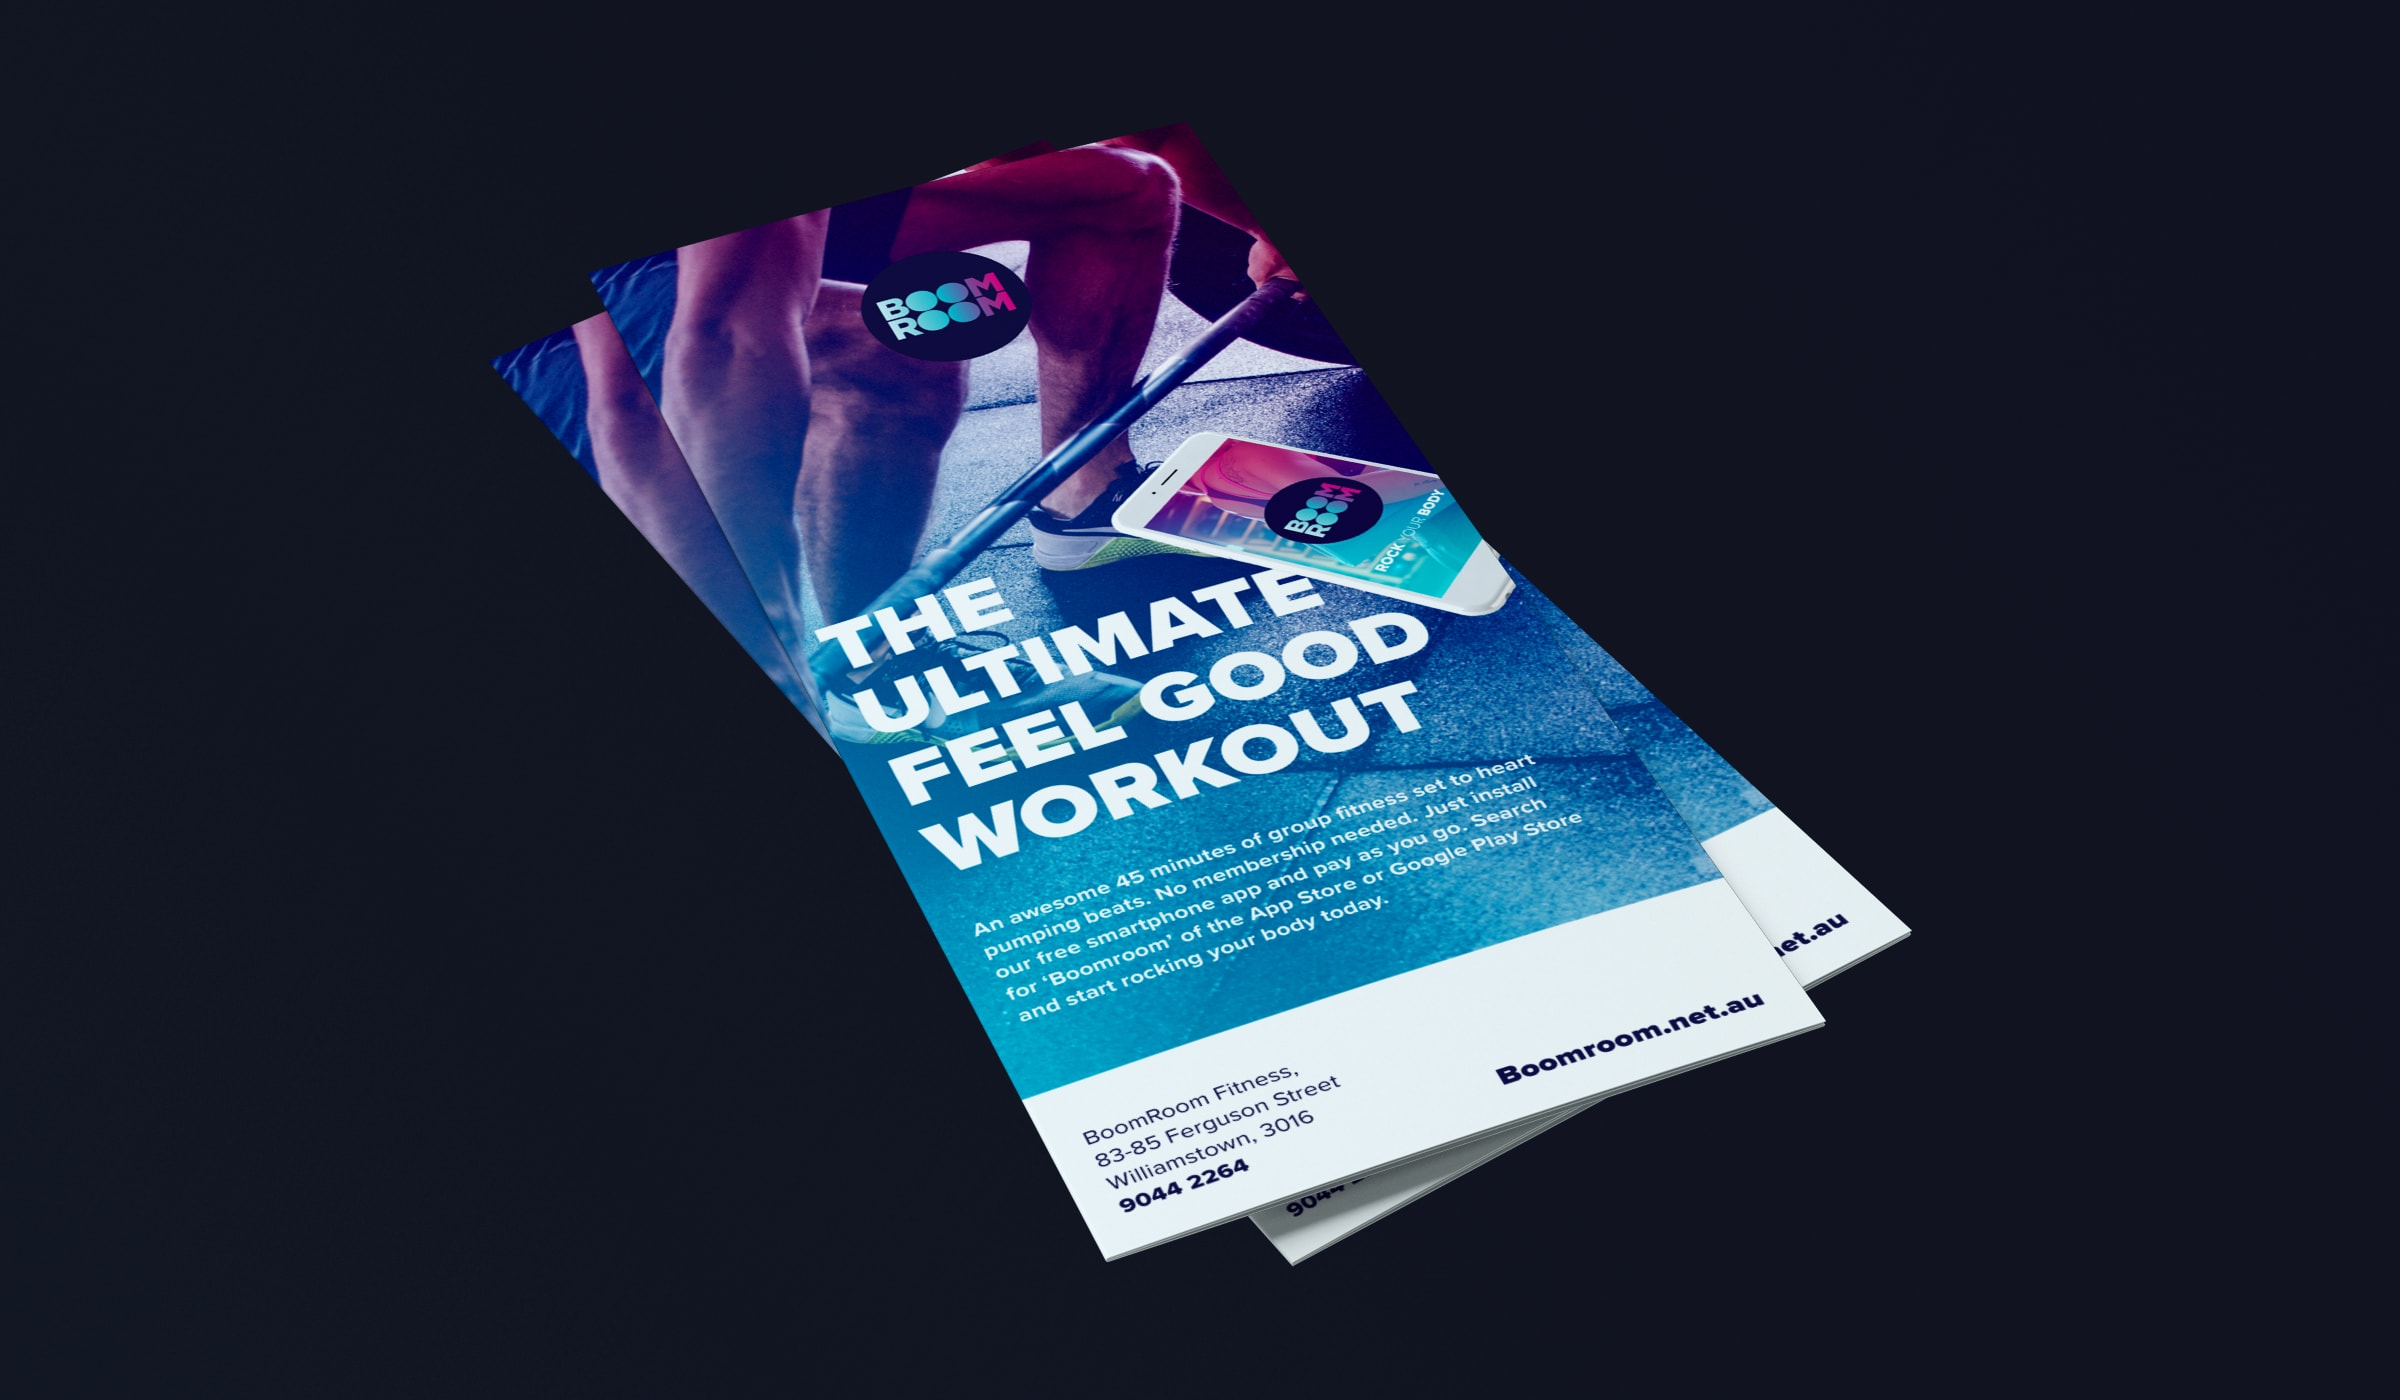 BoomRoom flyer for the ultimate workout